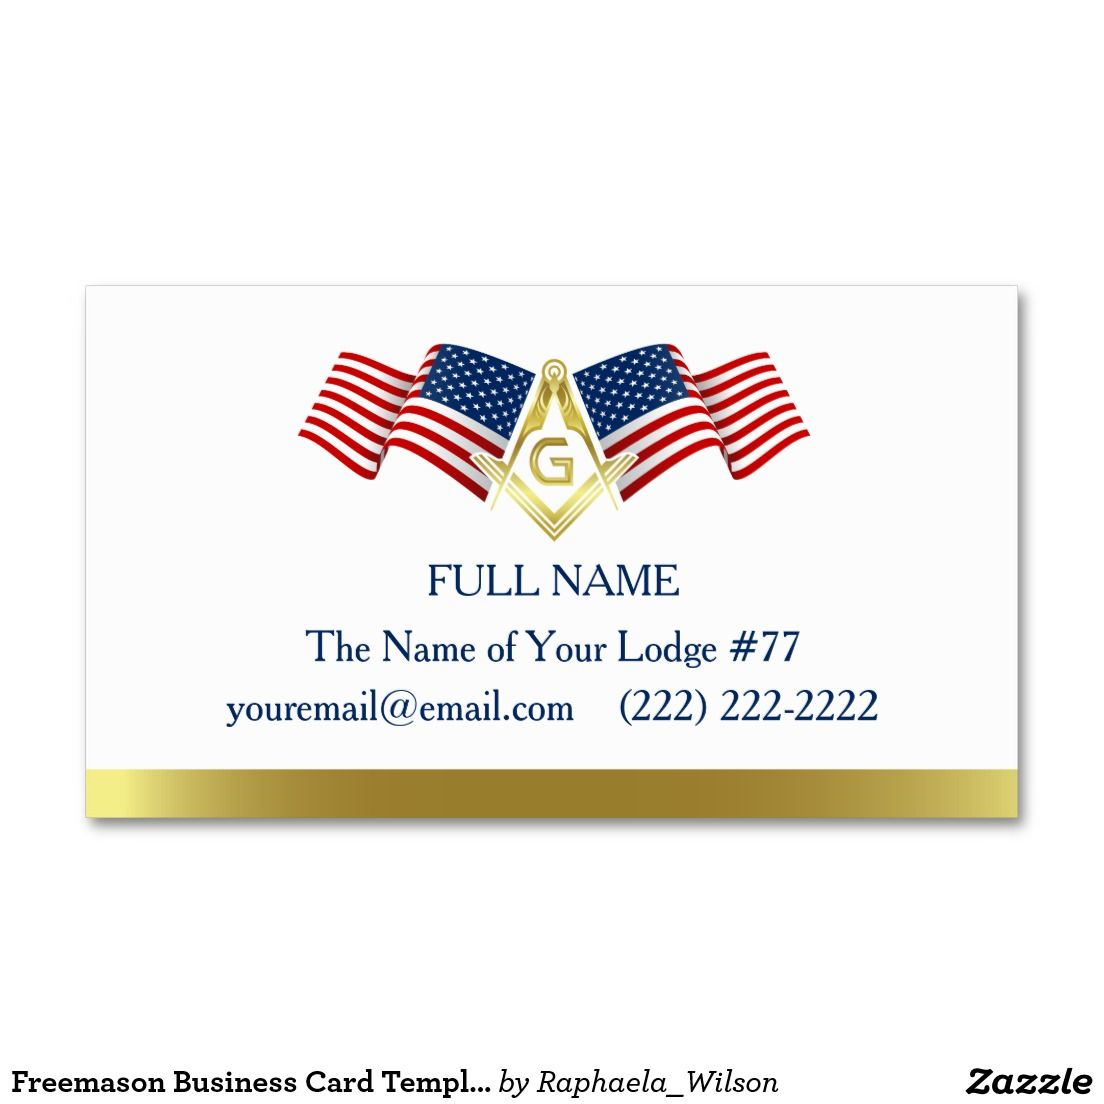 Cute Freemason Business Cards Pictures Inspiration - Business Card ...